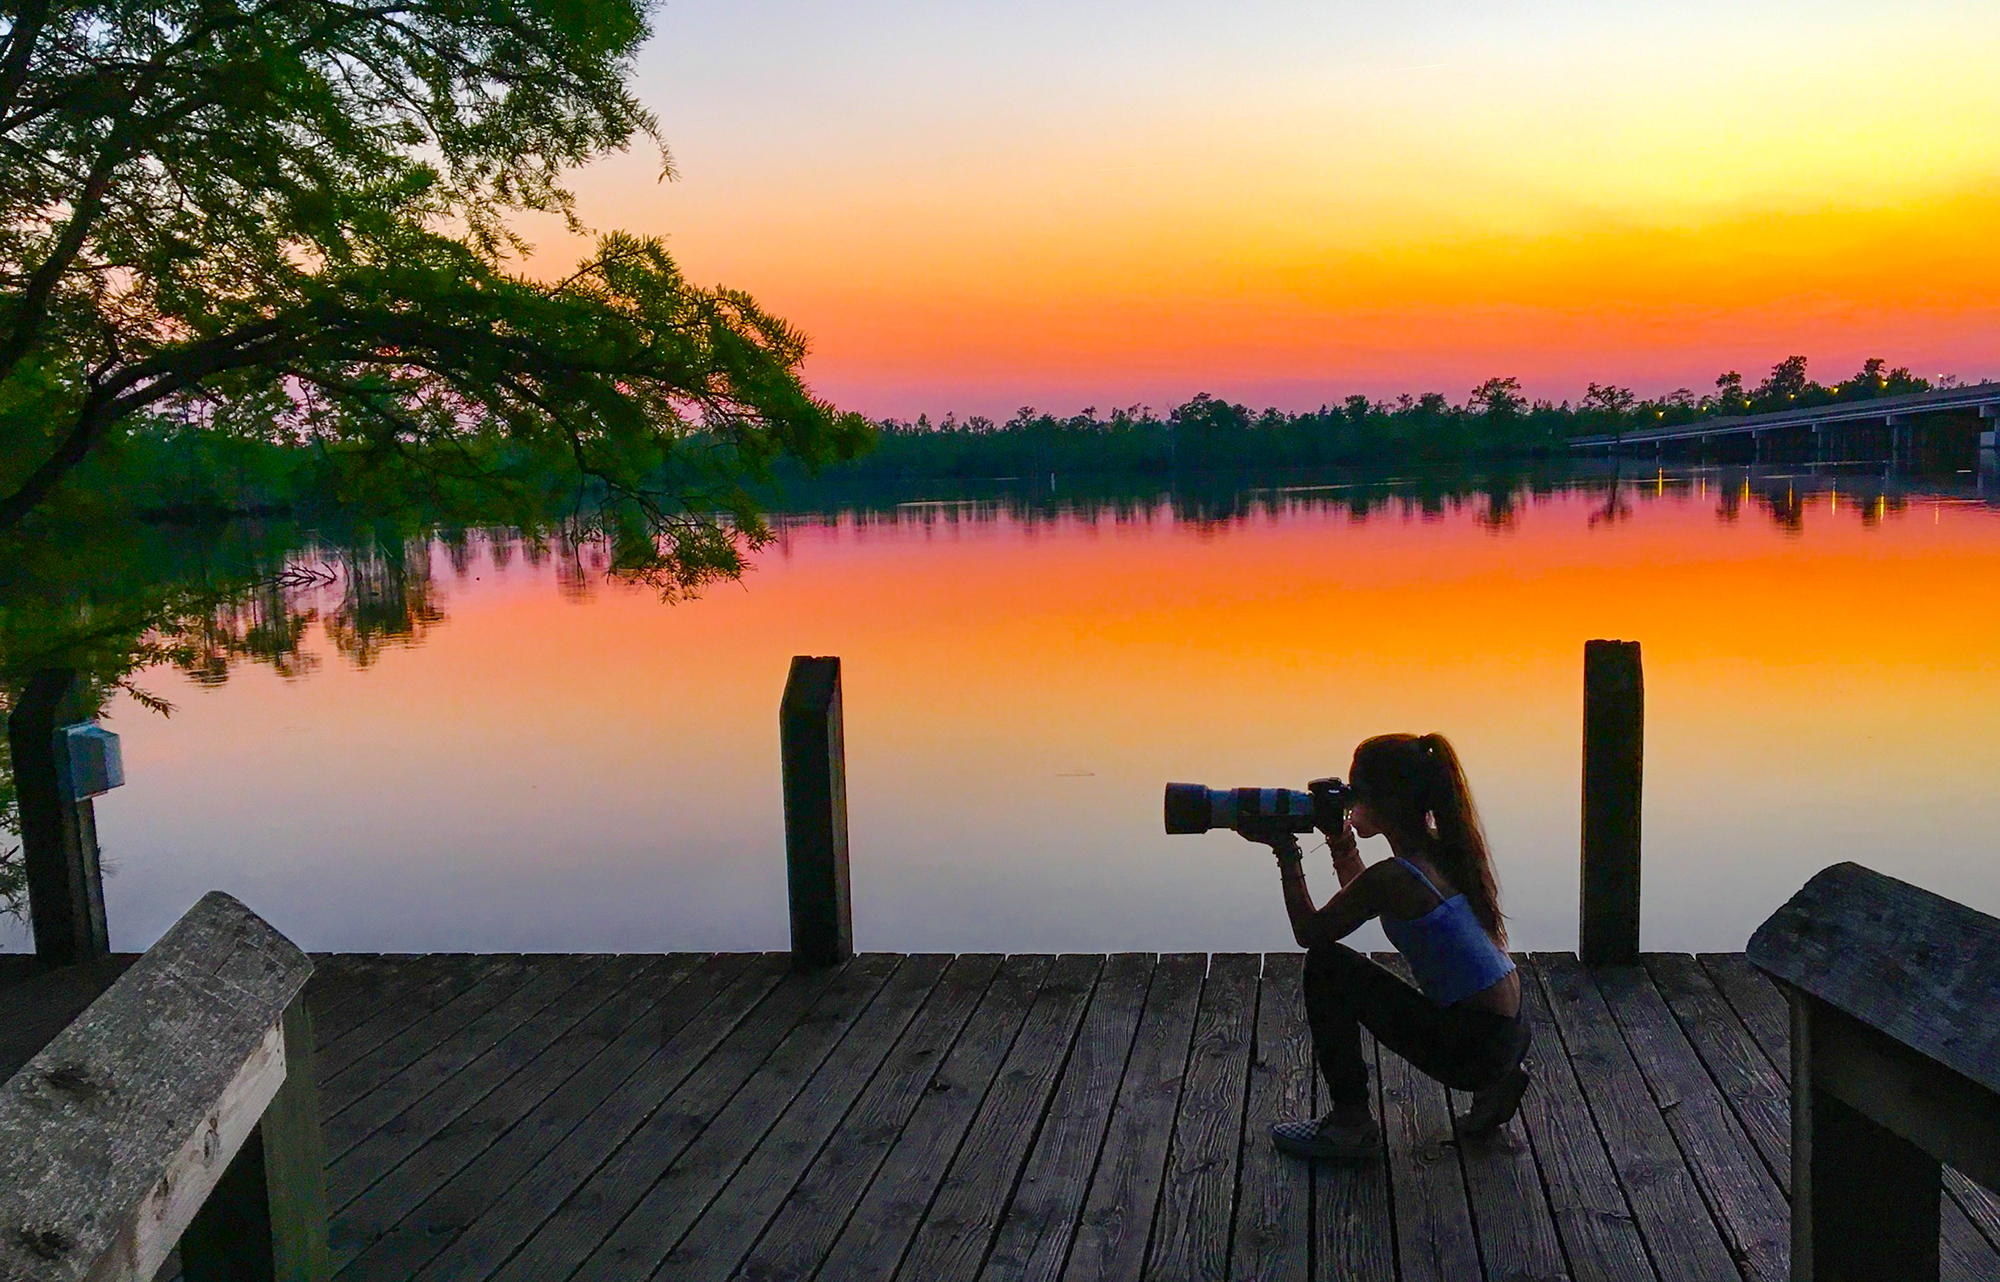 On our first day here in North Carolina, we stopped by a wildlife center at dusk to see what we could find, and we found this breath taking sunset. A magical way to kick off our adventure here.